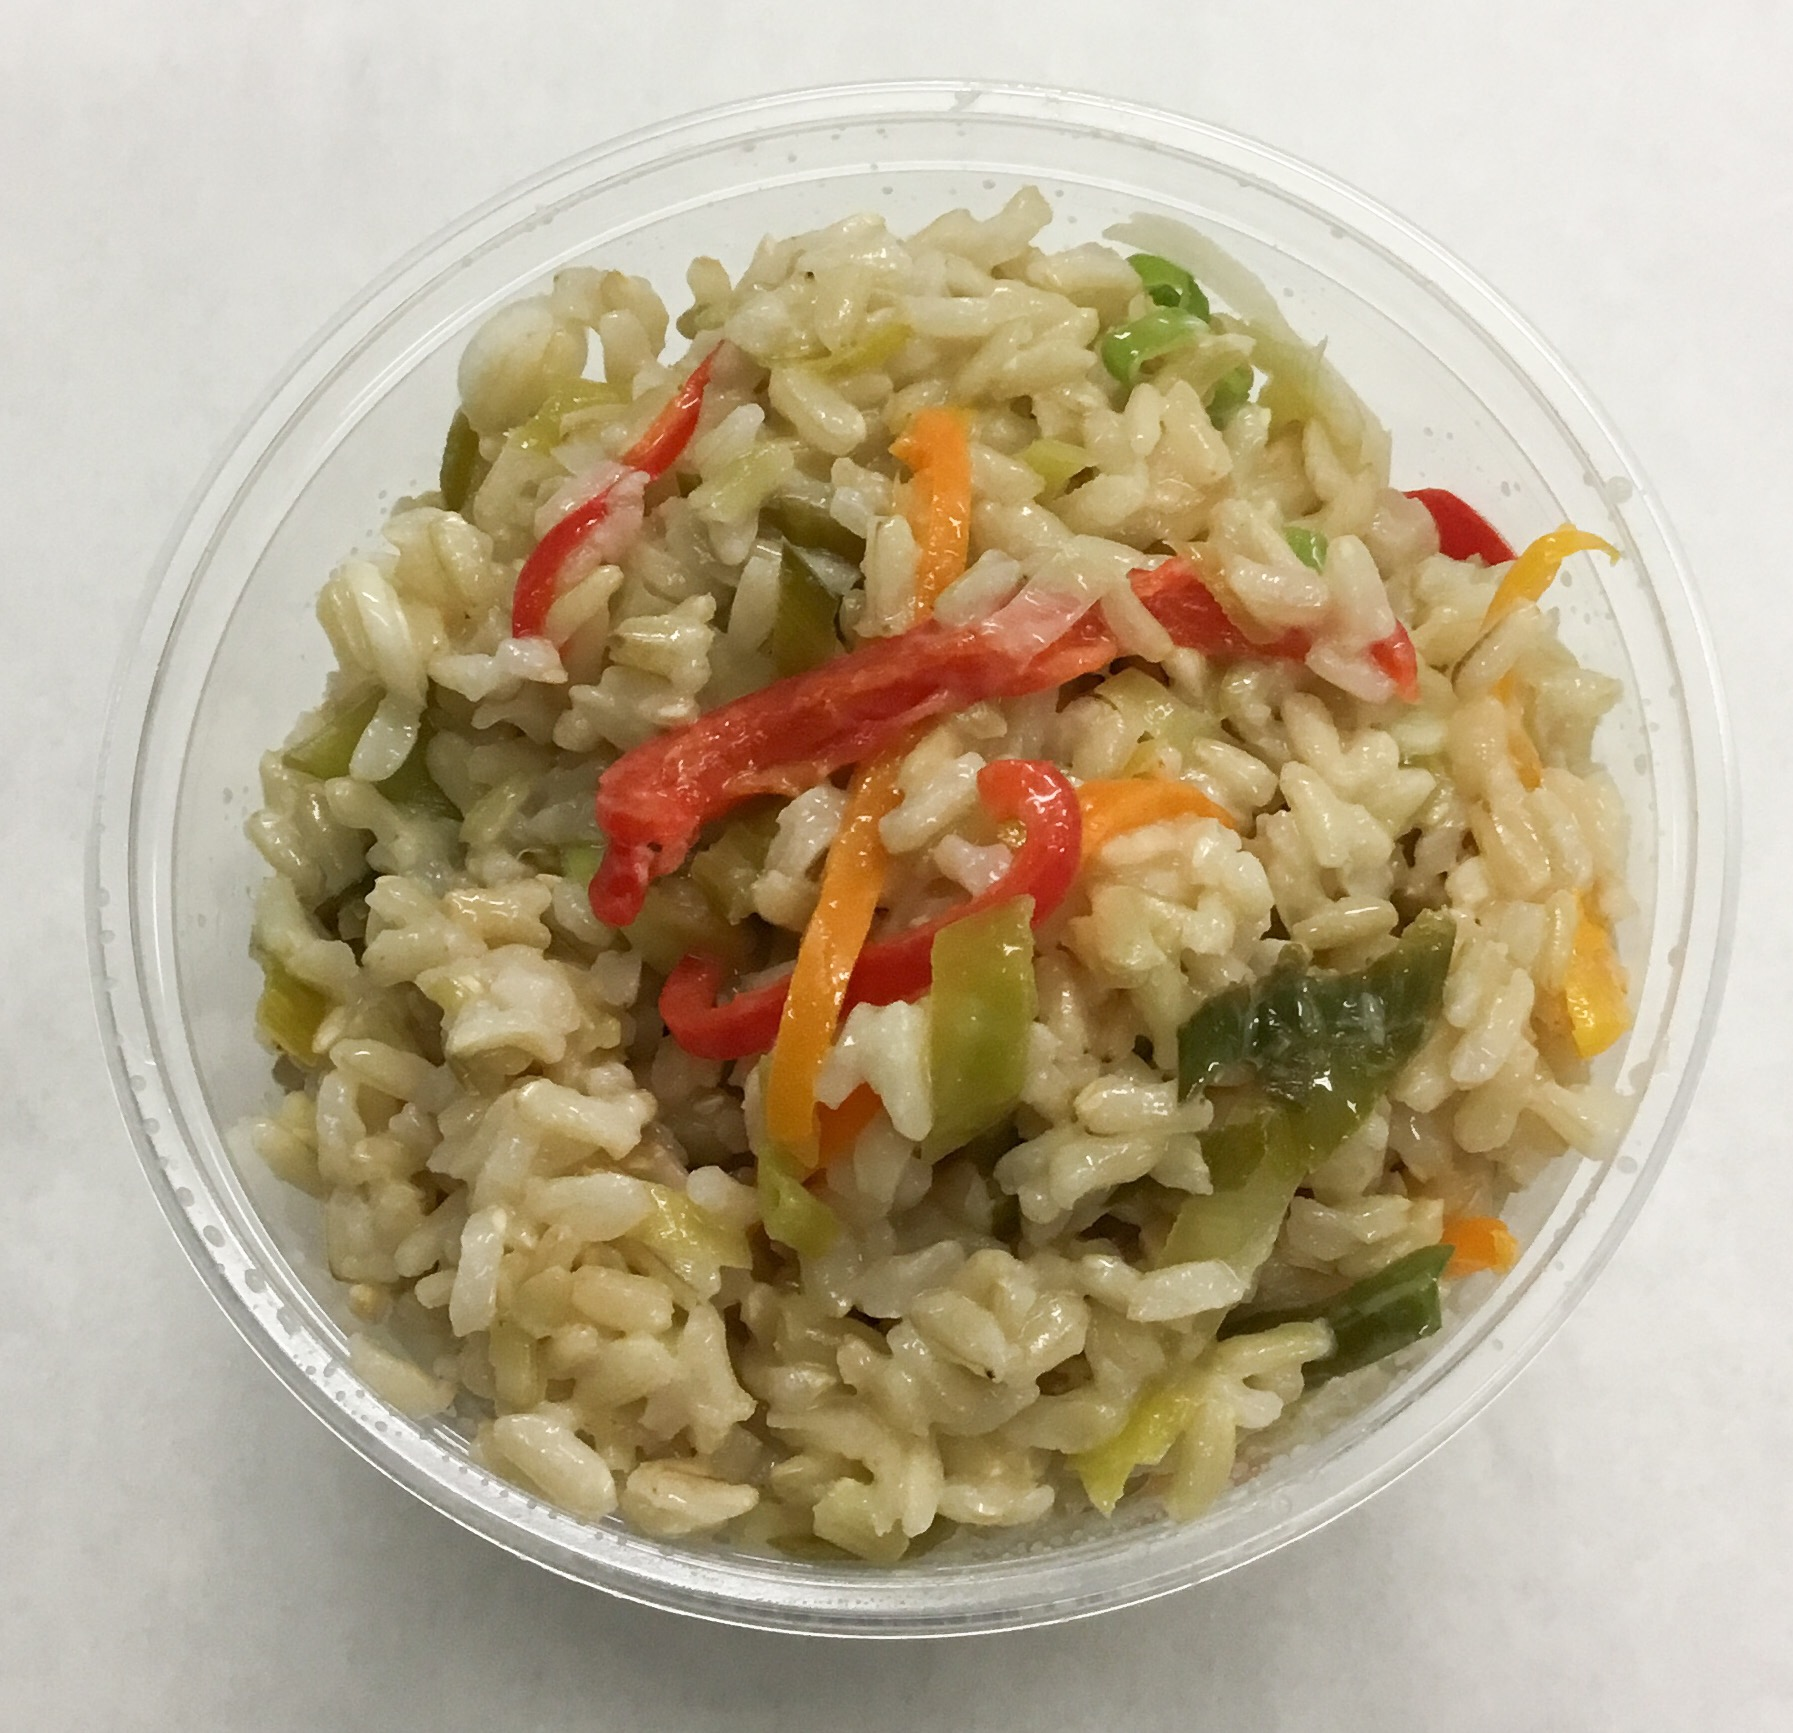 Brown basmati rice salad with bell peppers, leeks, scallions, white miso and yuzu.